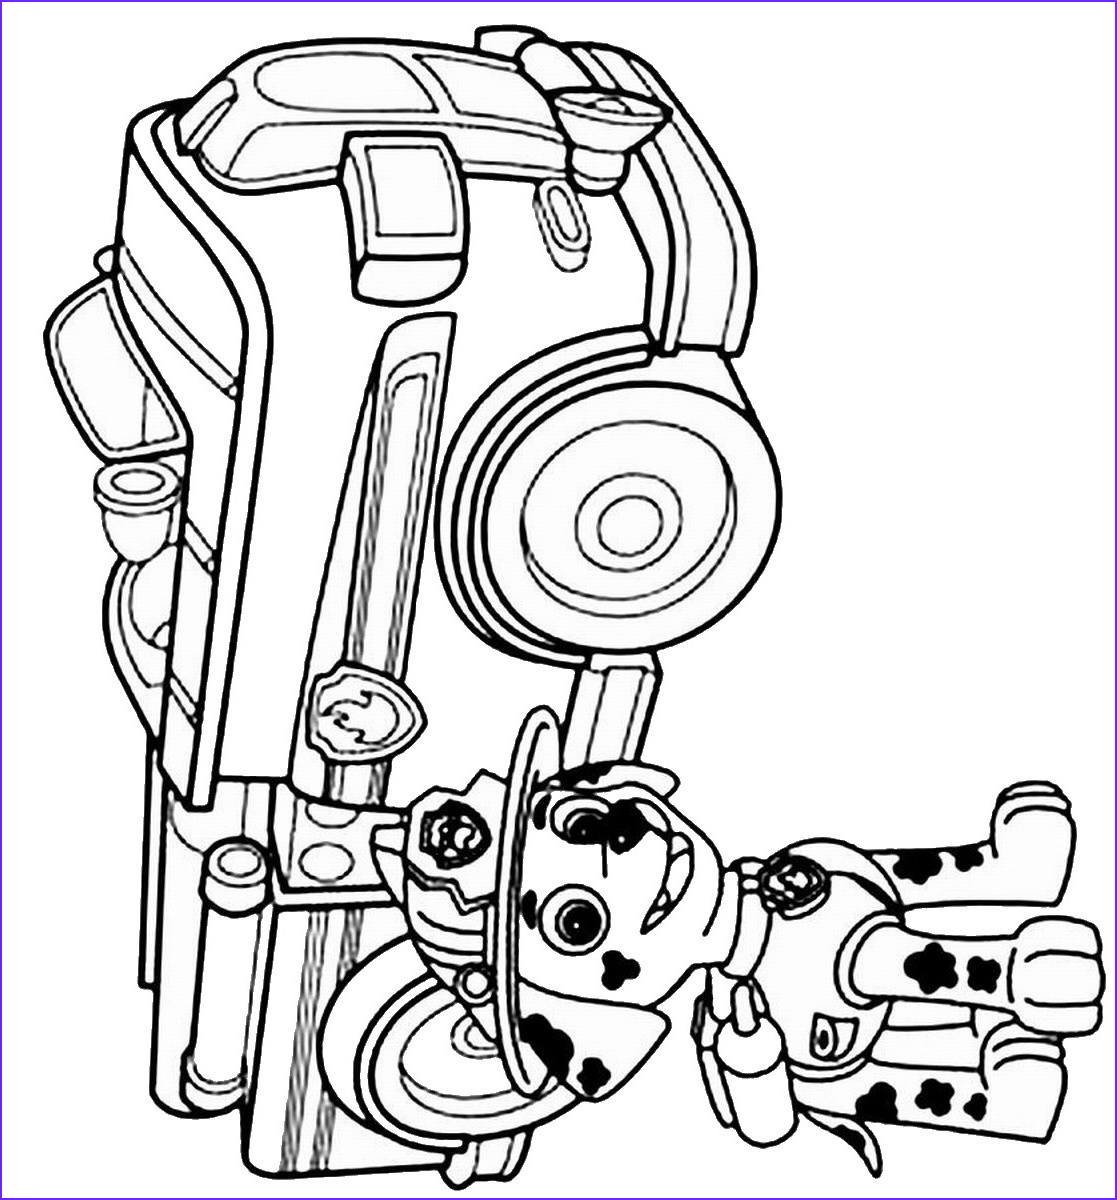 Paw Patrol Coloring Book Best Of Photography Paw Patrol Coloring Pages Coloring Home